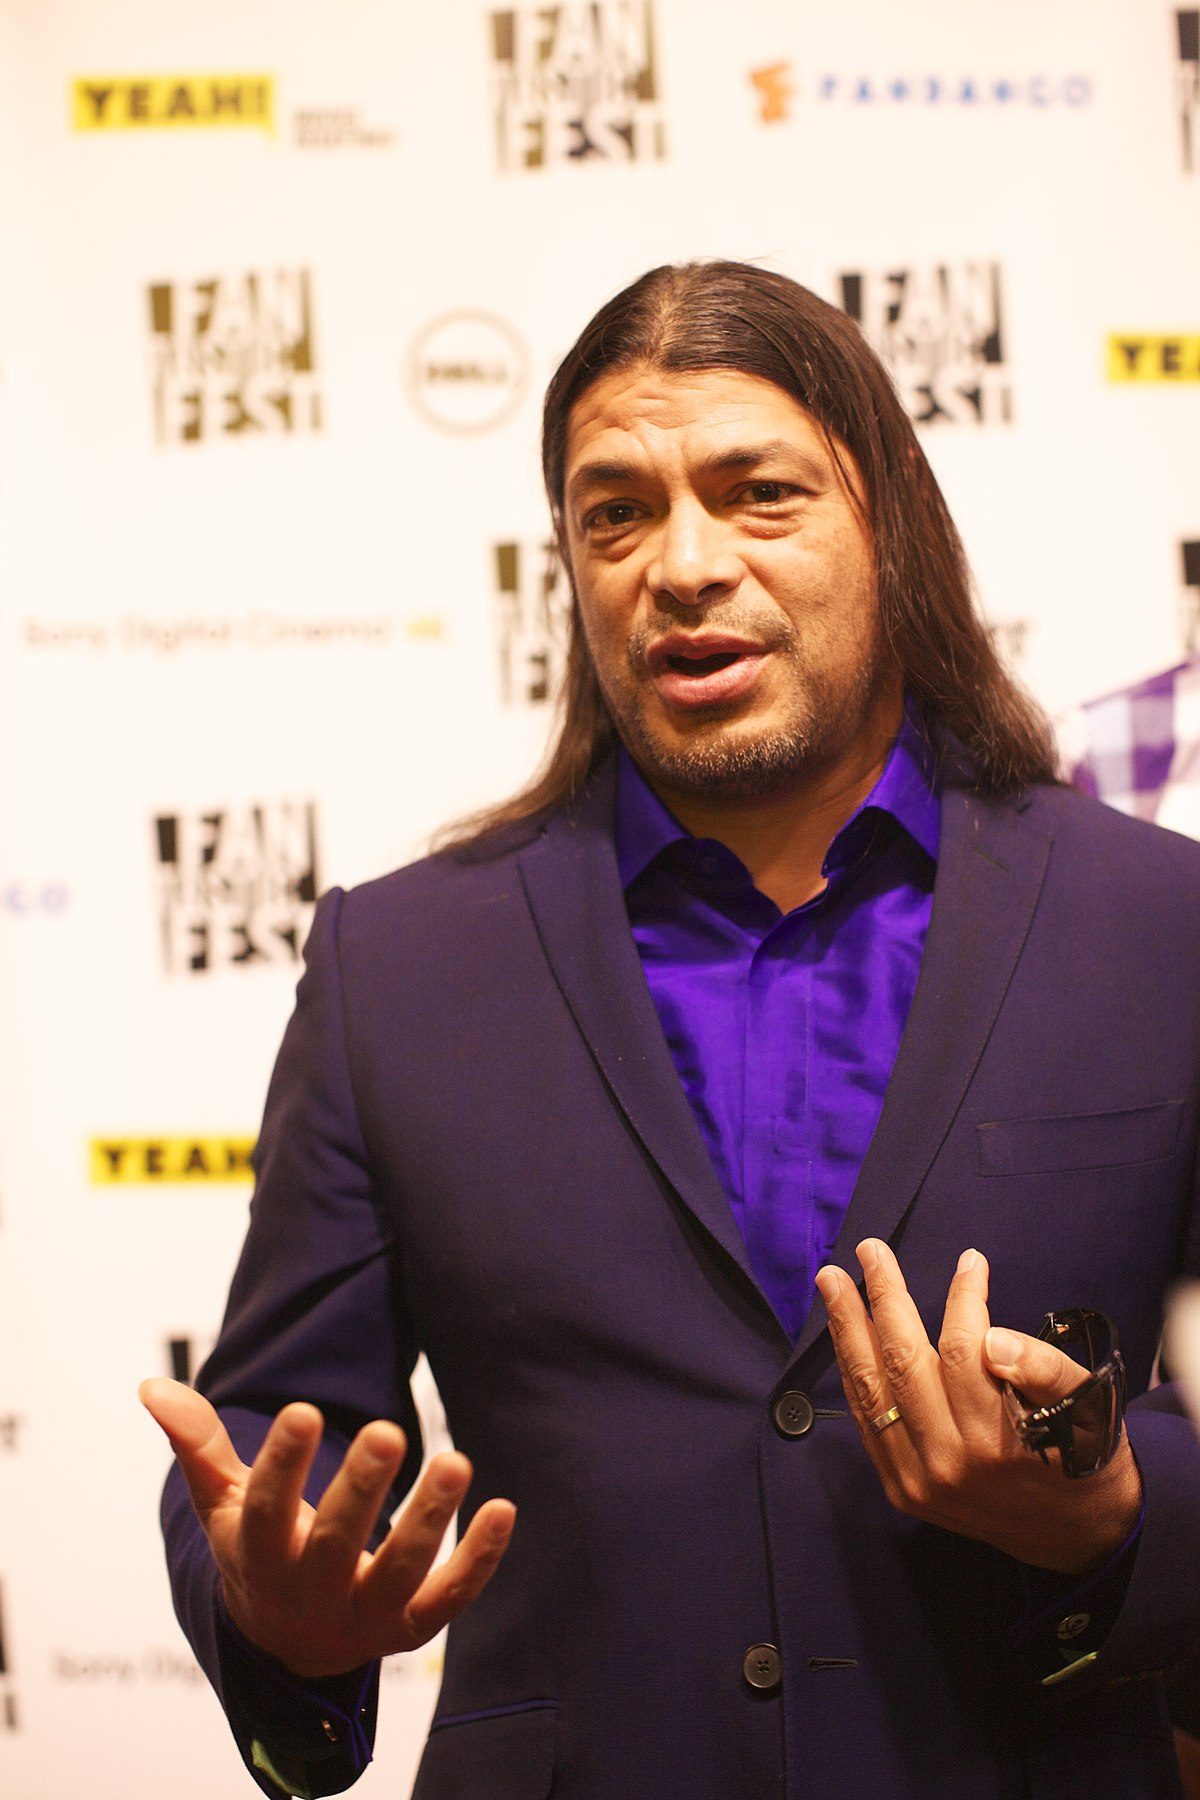 robert trujillo wikipedia